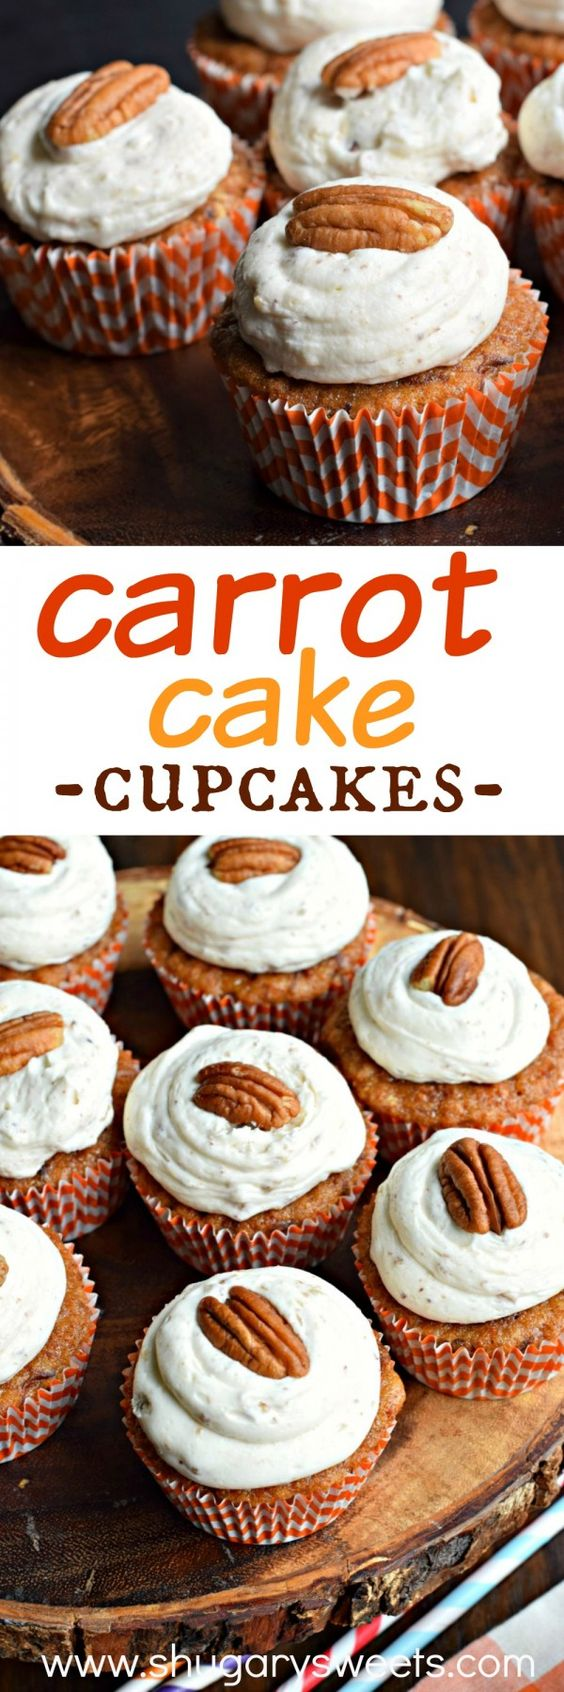 Carrot cake cupcakes, Carrot cakes and Carrots on Pinterest